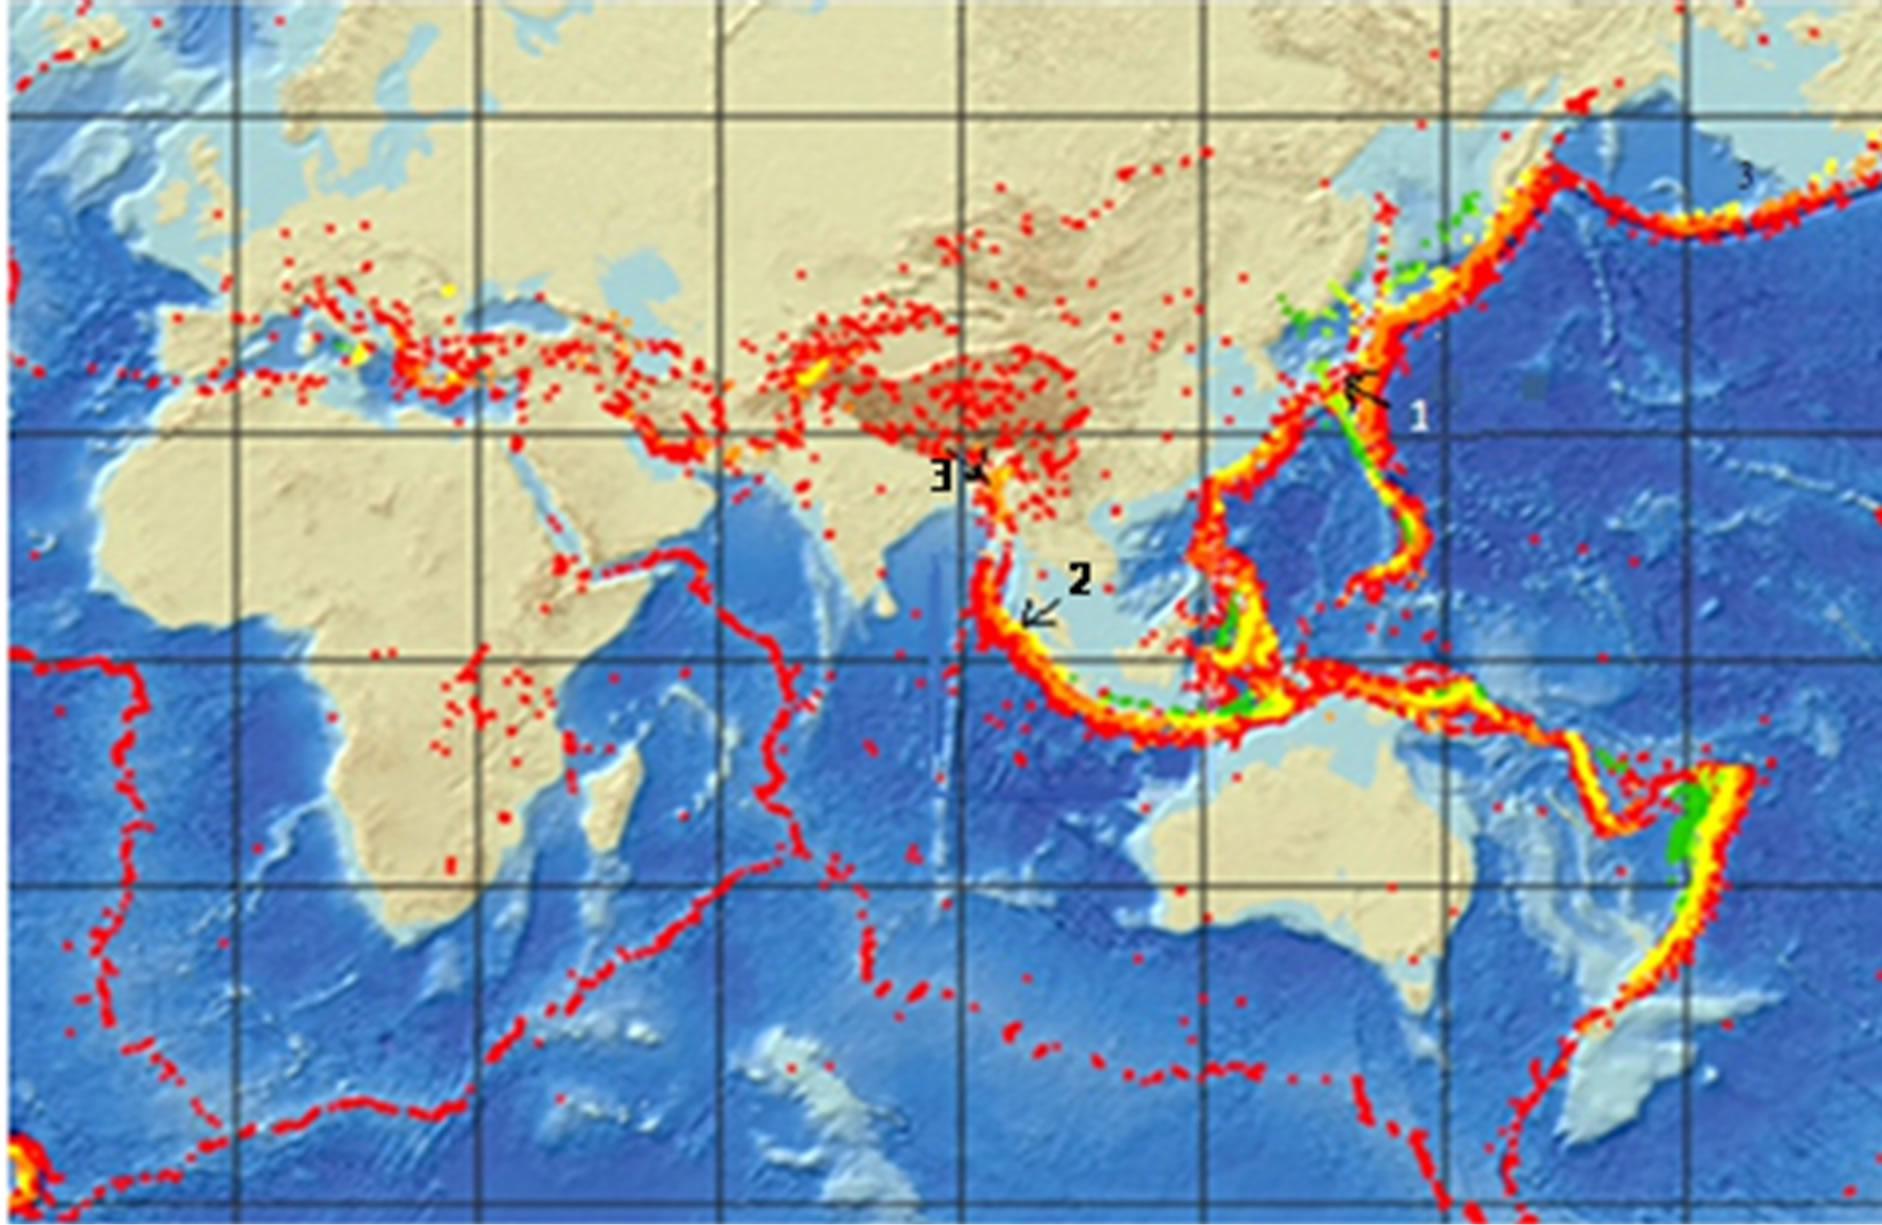 Growth and inhibition of equatorial anomaly prior to an earthquake displays the global seismic fault line the positions of epicenters of 1 japan eq and 2 indonesia eq are shown along with the location of 3 guwahati gumiabroncs Image collections